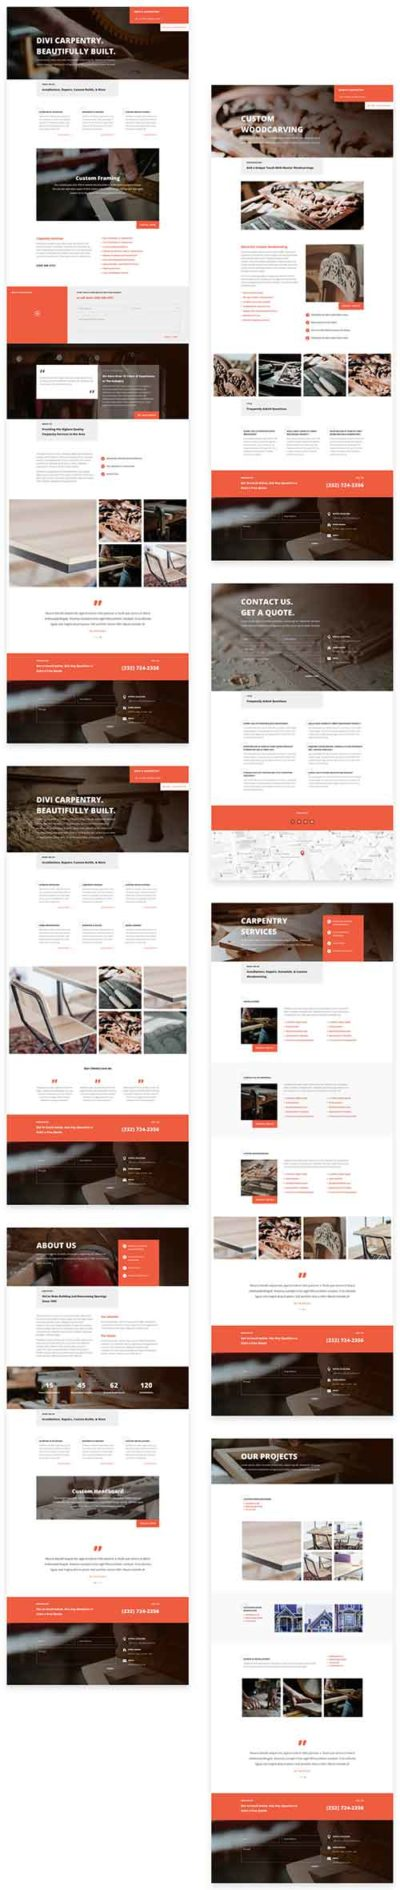 free divi layout for carpenters